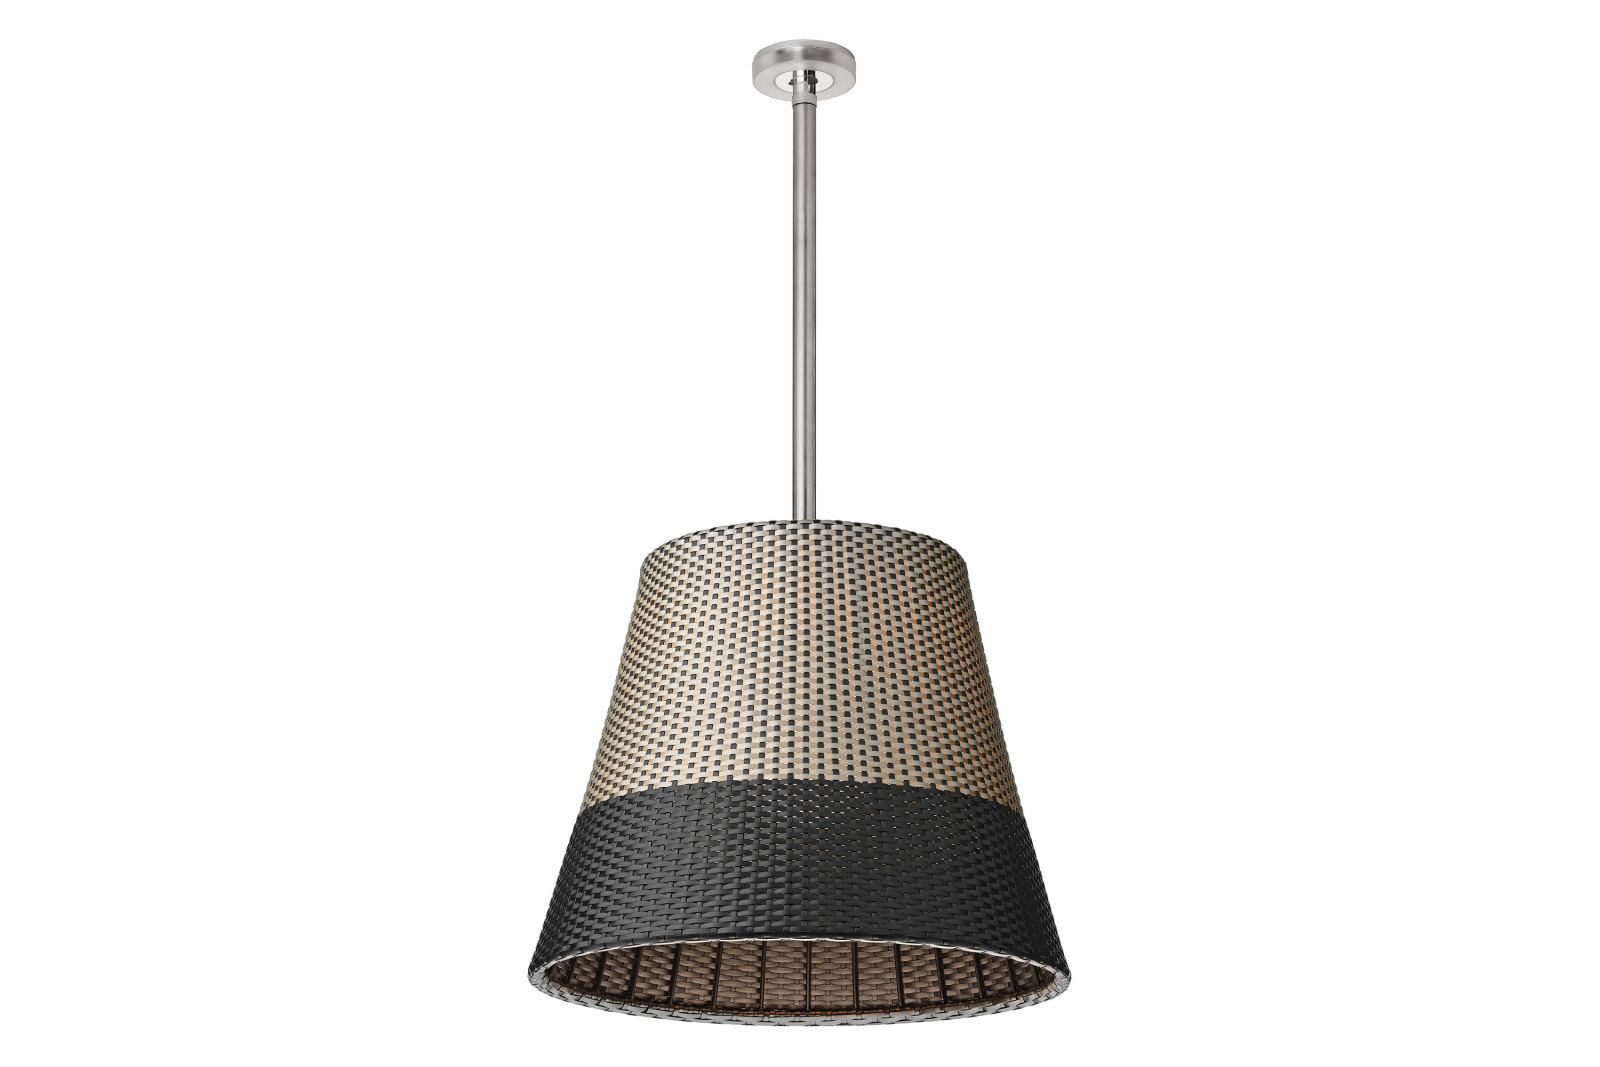 Romeo Outdoor C3 Pendant Light Panama, Tige 91 cm